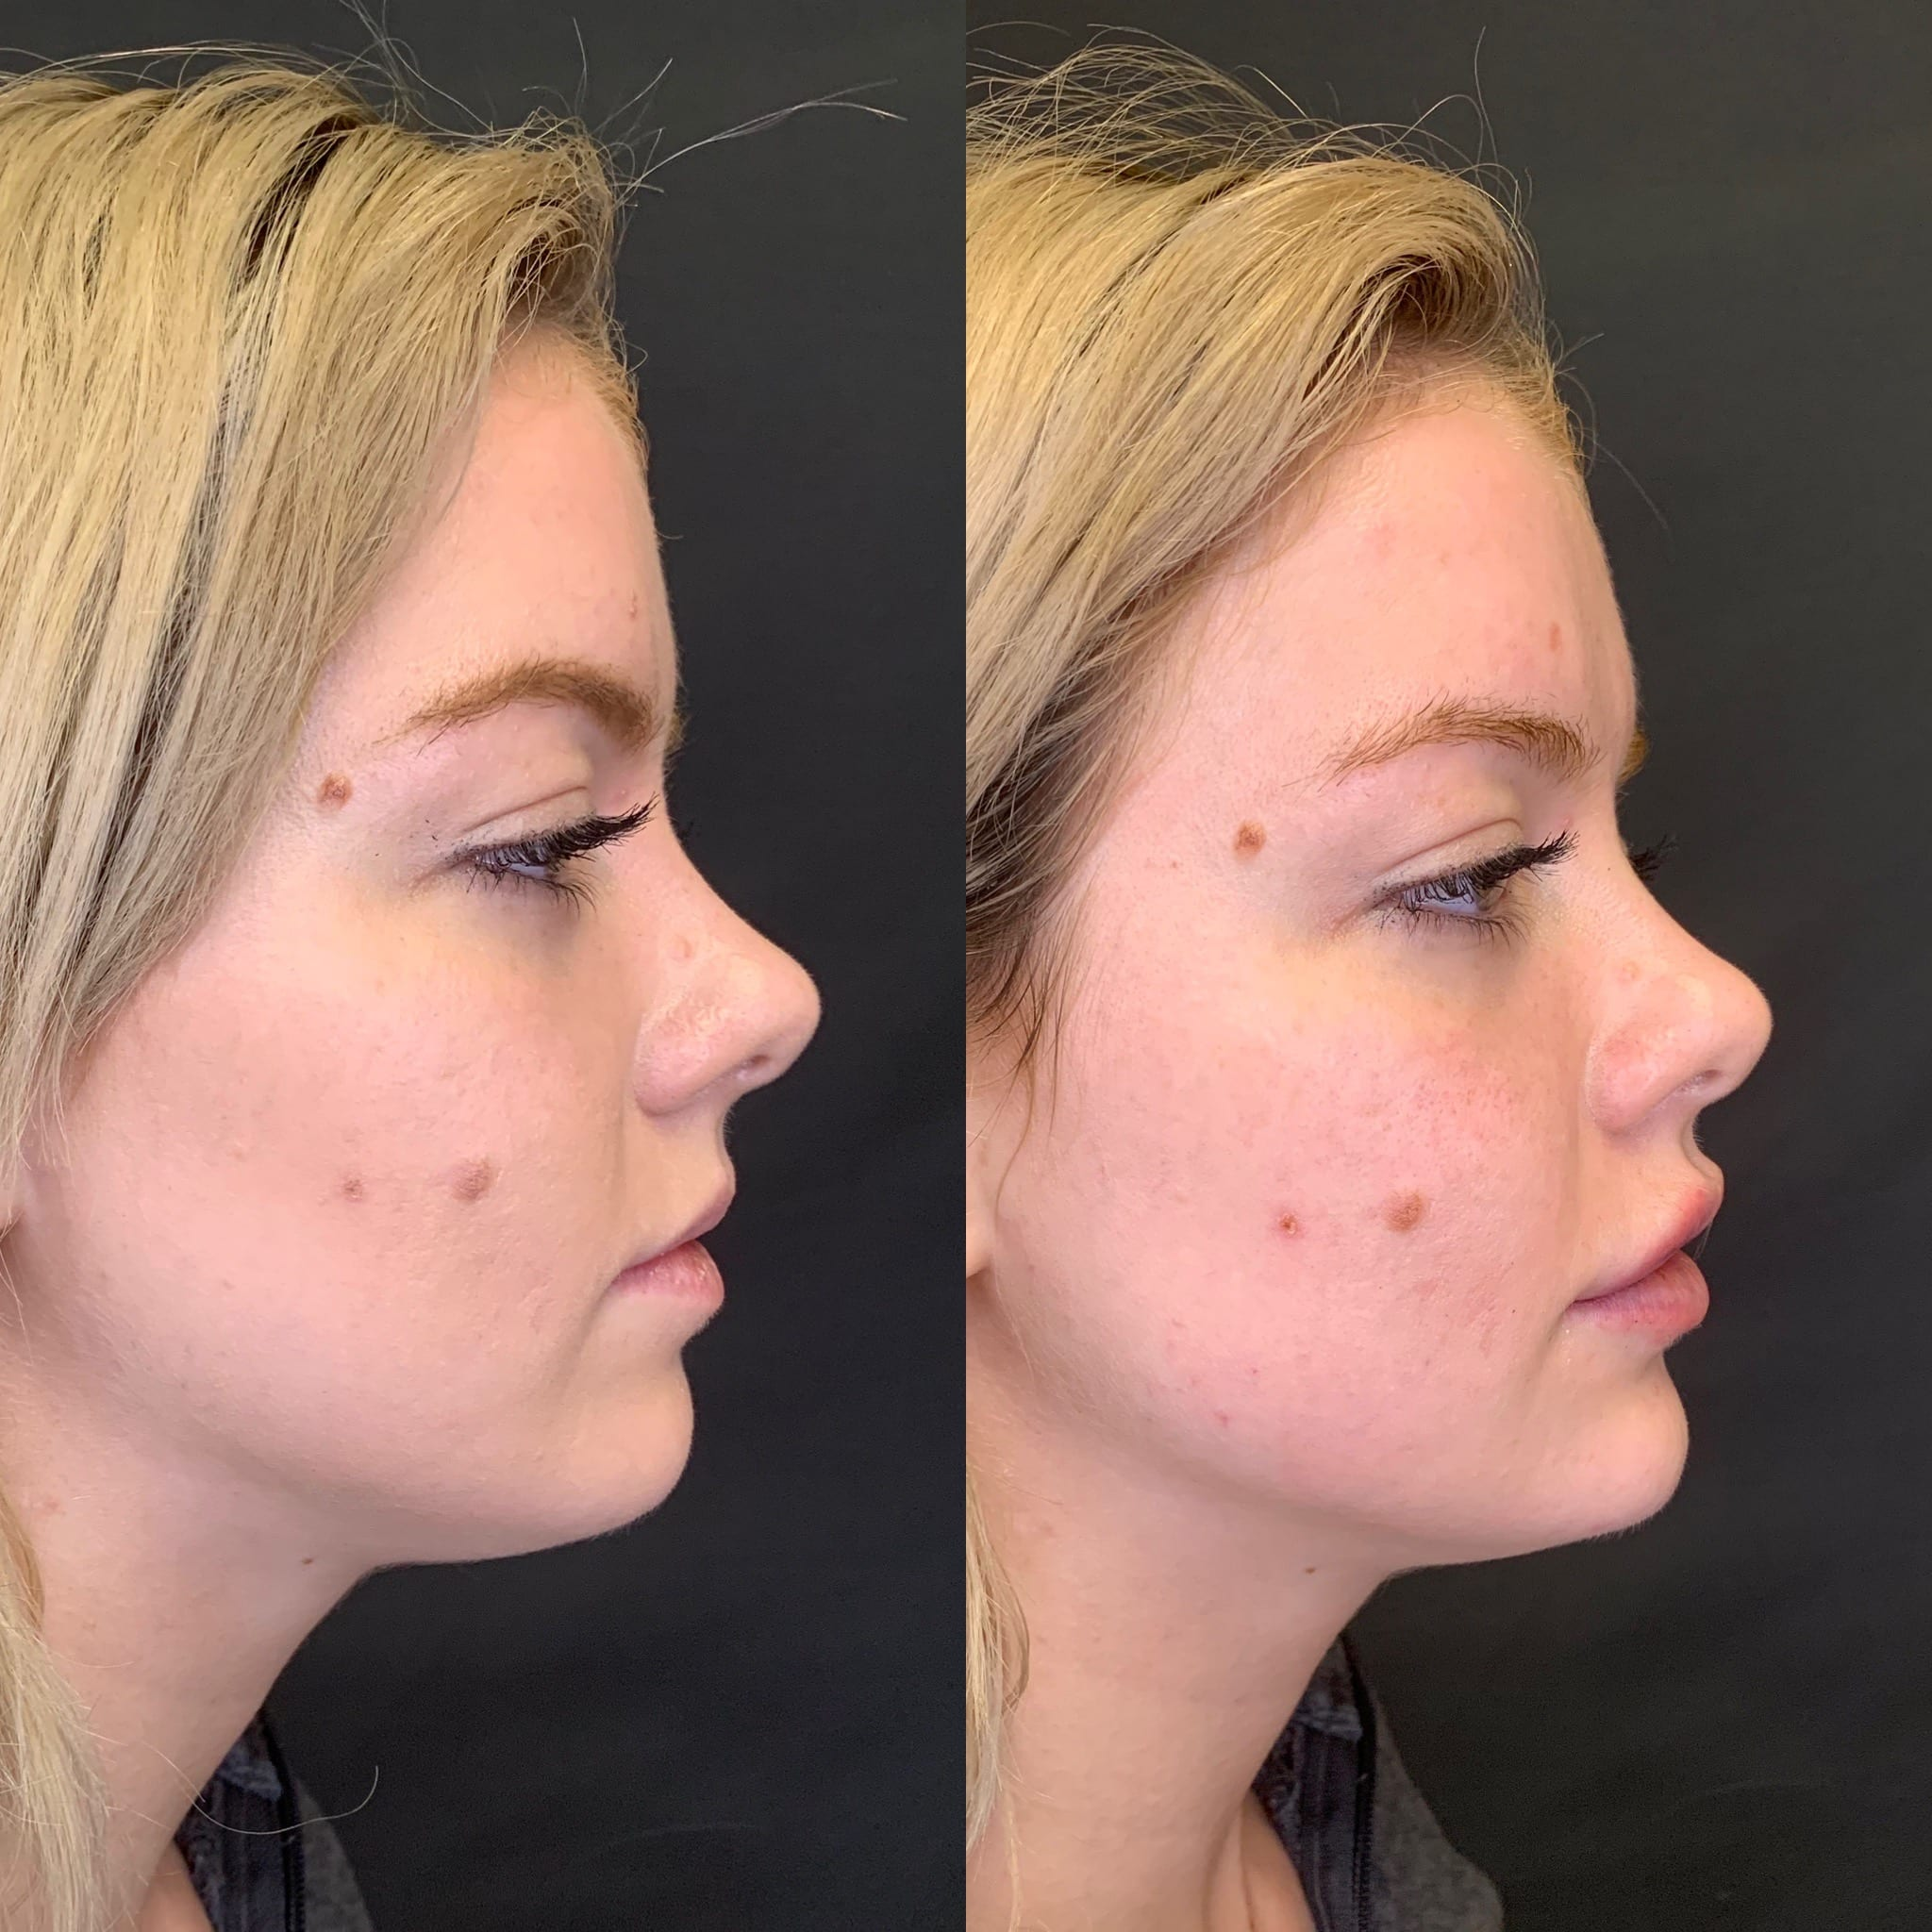 24 y/o Caucasian F immediately after injecting 1 full syringe of voluma to her chin for better projection and side profile balancing.